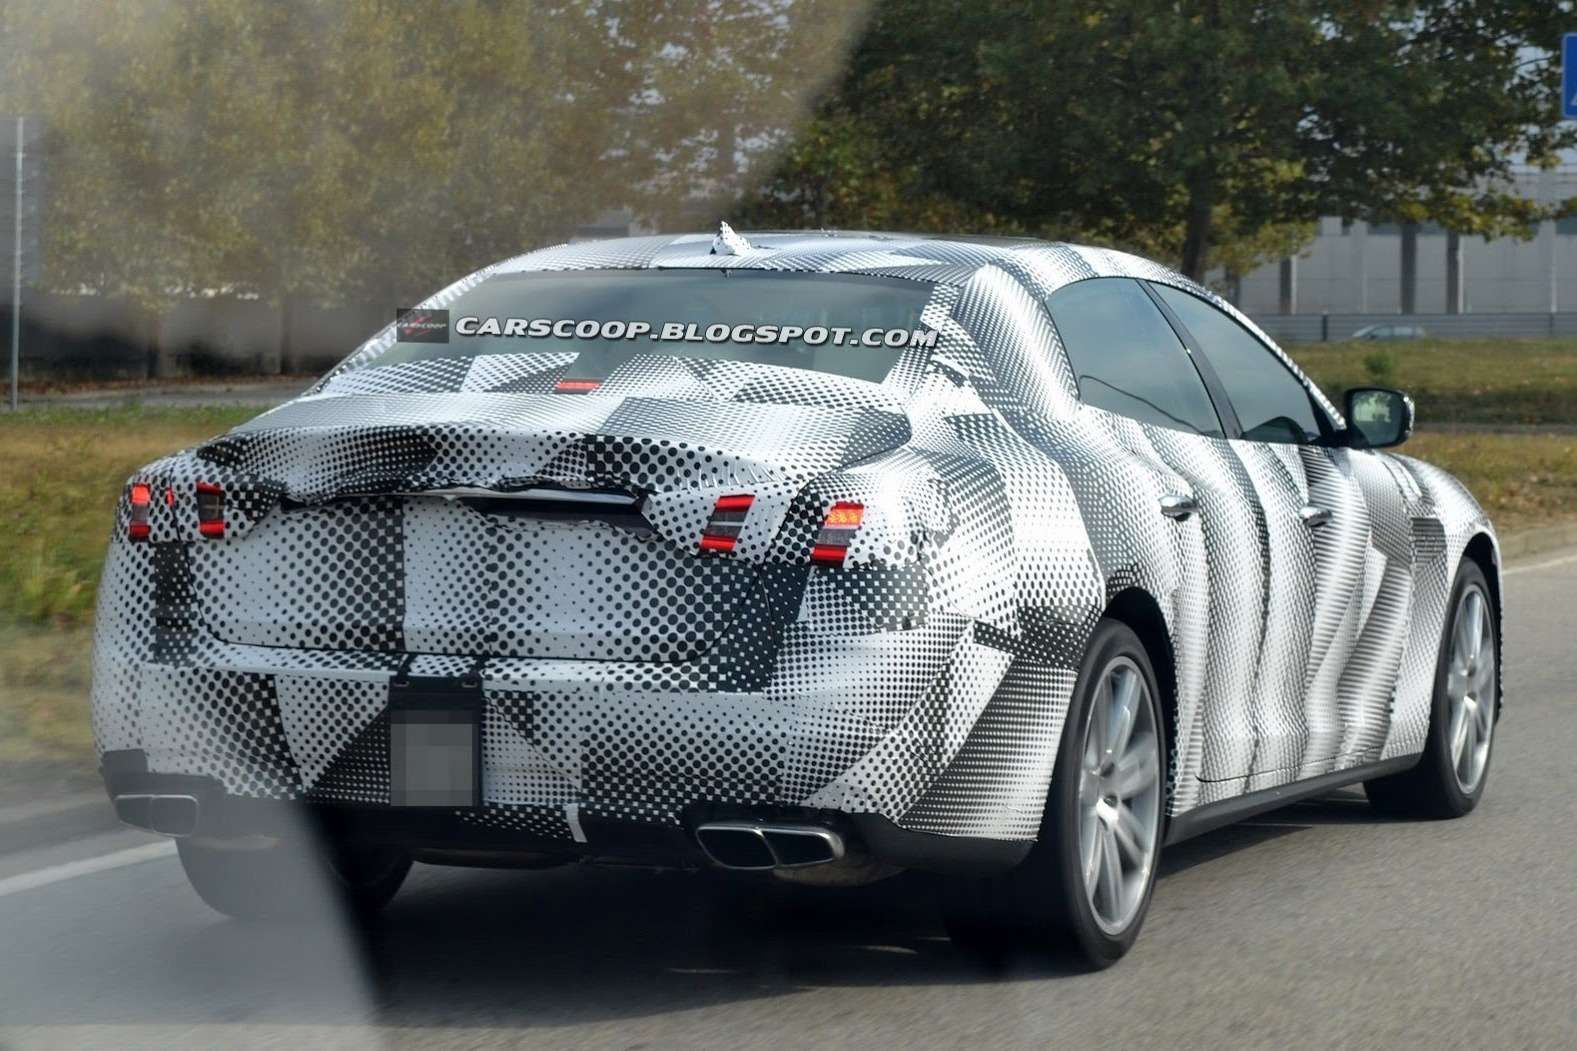 NewMaserati Quattroporte test prototype side-rear view 1_no_copyright